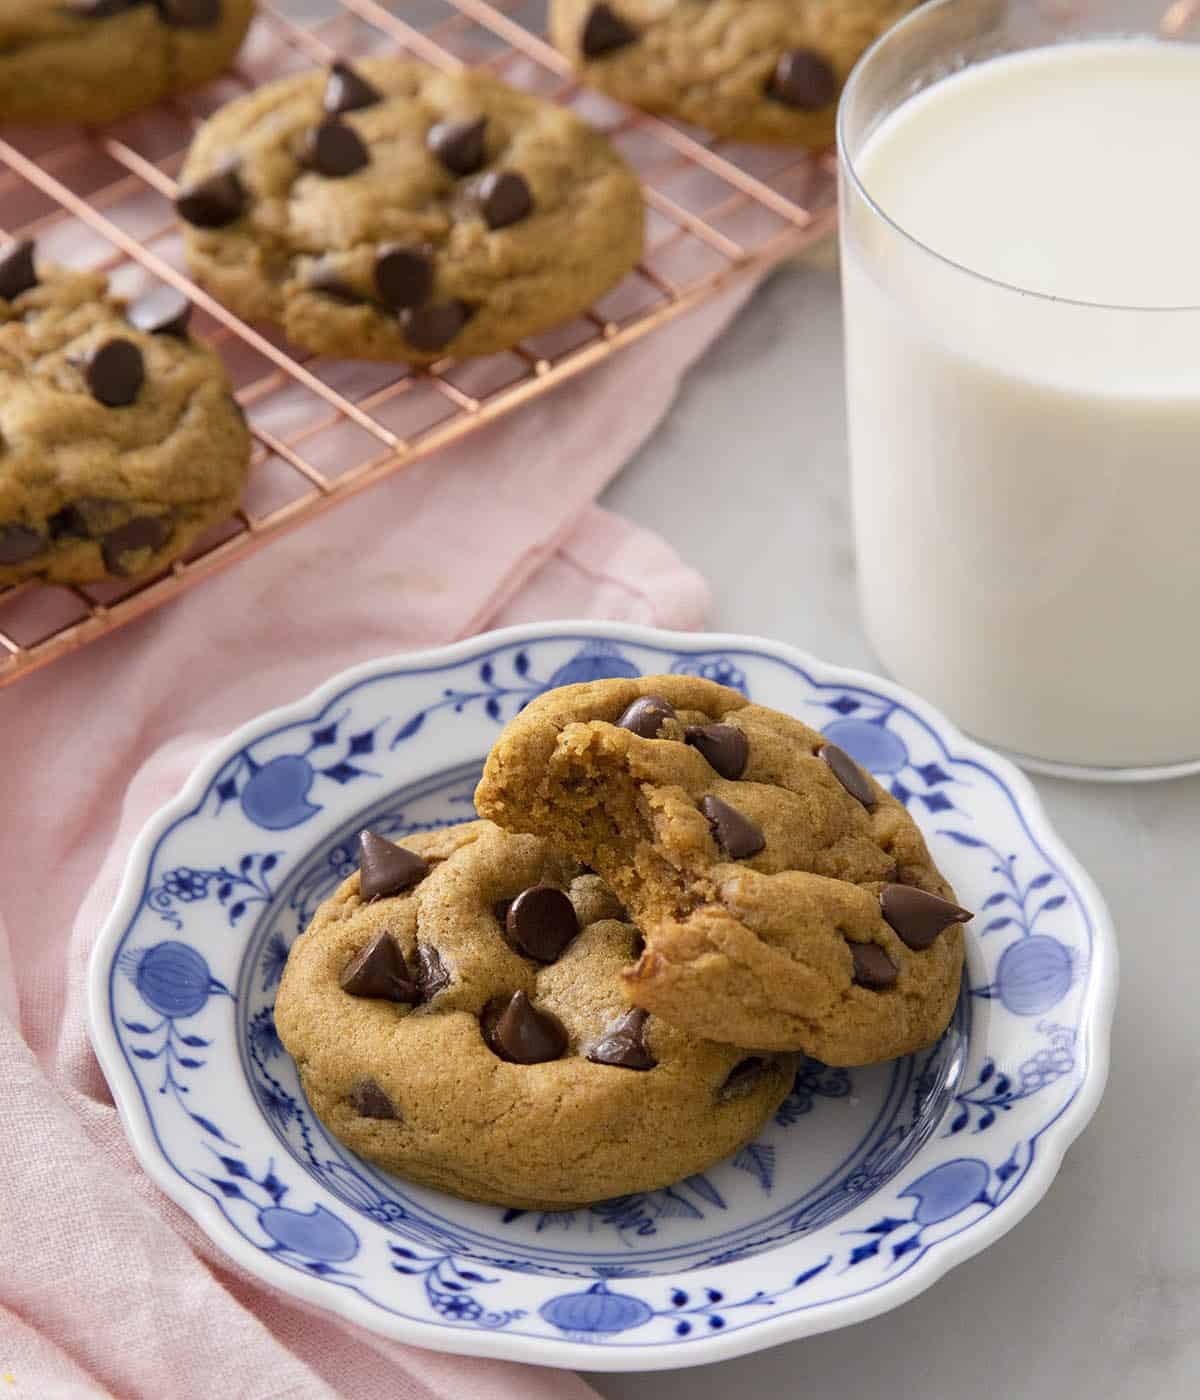 Two Pumpkin chocolate chip cookies on a blue and white plate next to a glass of milk.